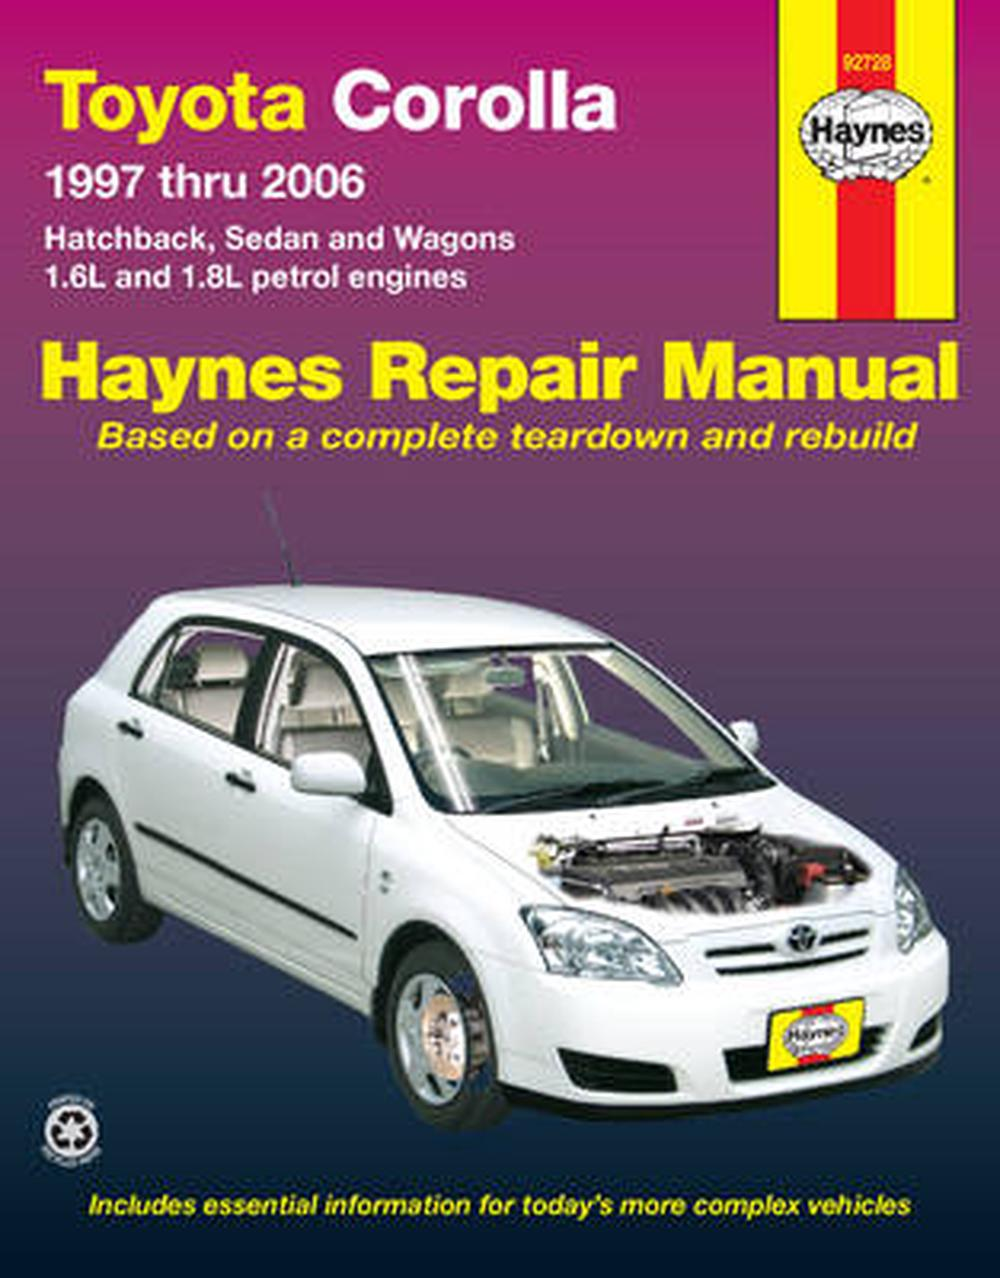 Corolla service manual toyota corolla service and repair manual array toyota corolla automotive repair manual 1997 2006 by haynes rh thenile fandeluxe Images